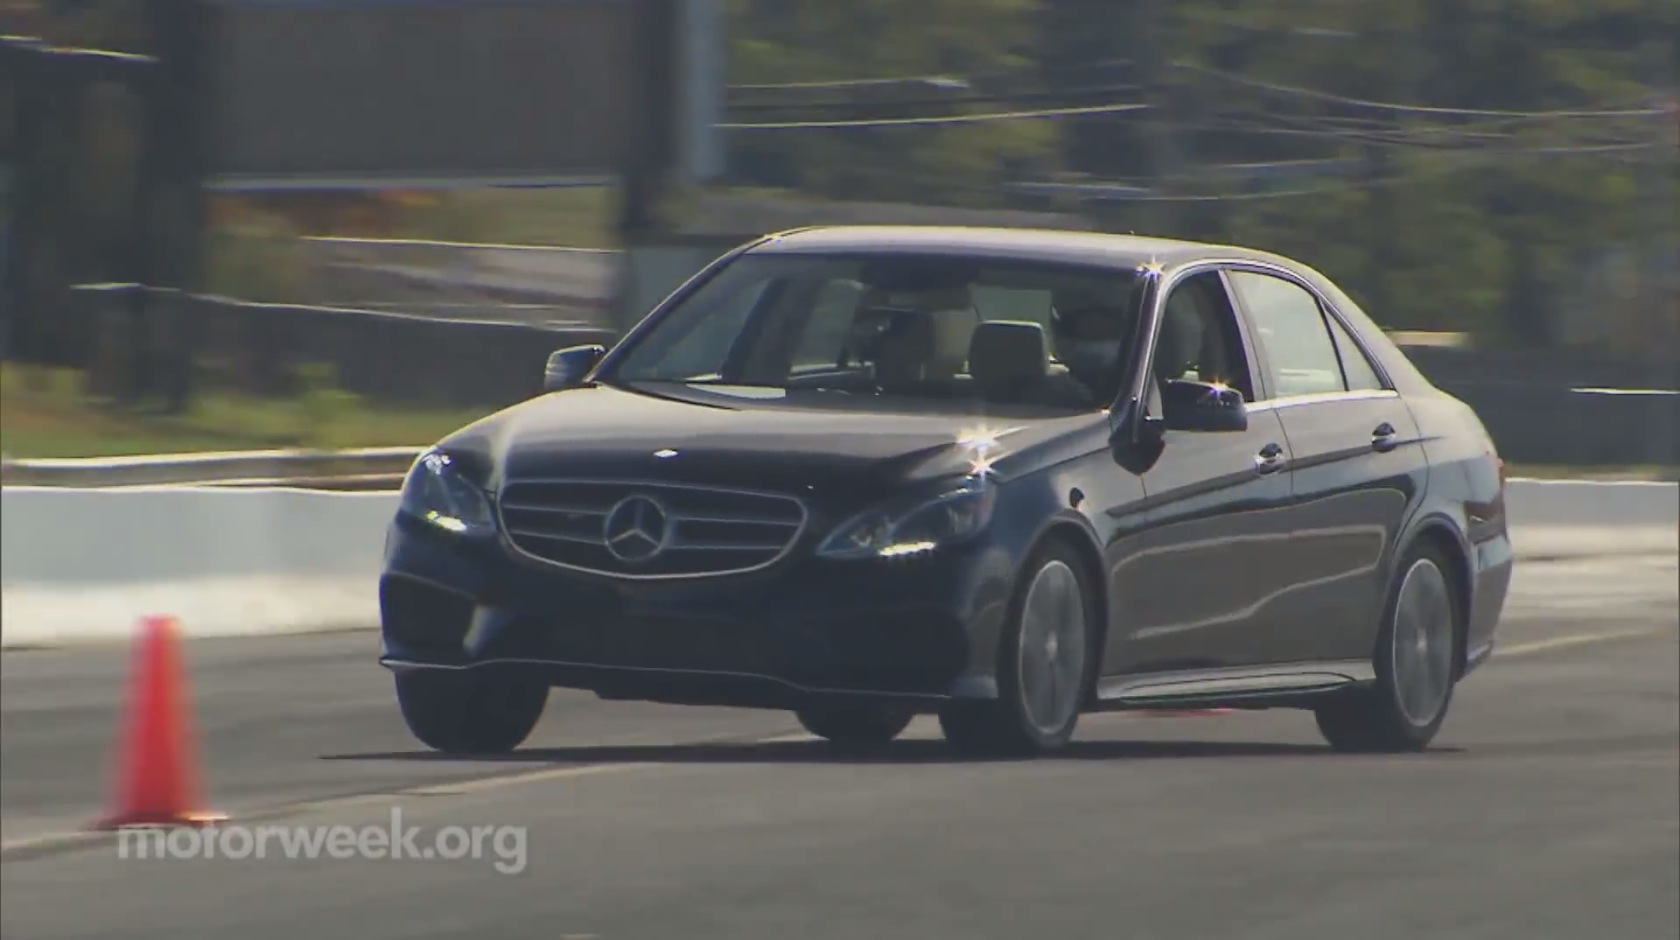 E 250 bluetec 4matic gets reviewed by motorweek for Who owns mercedes benz now